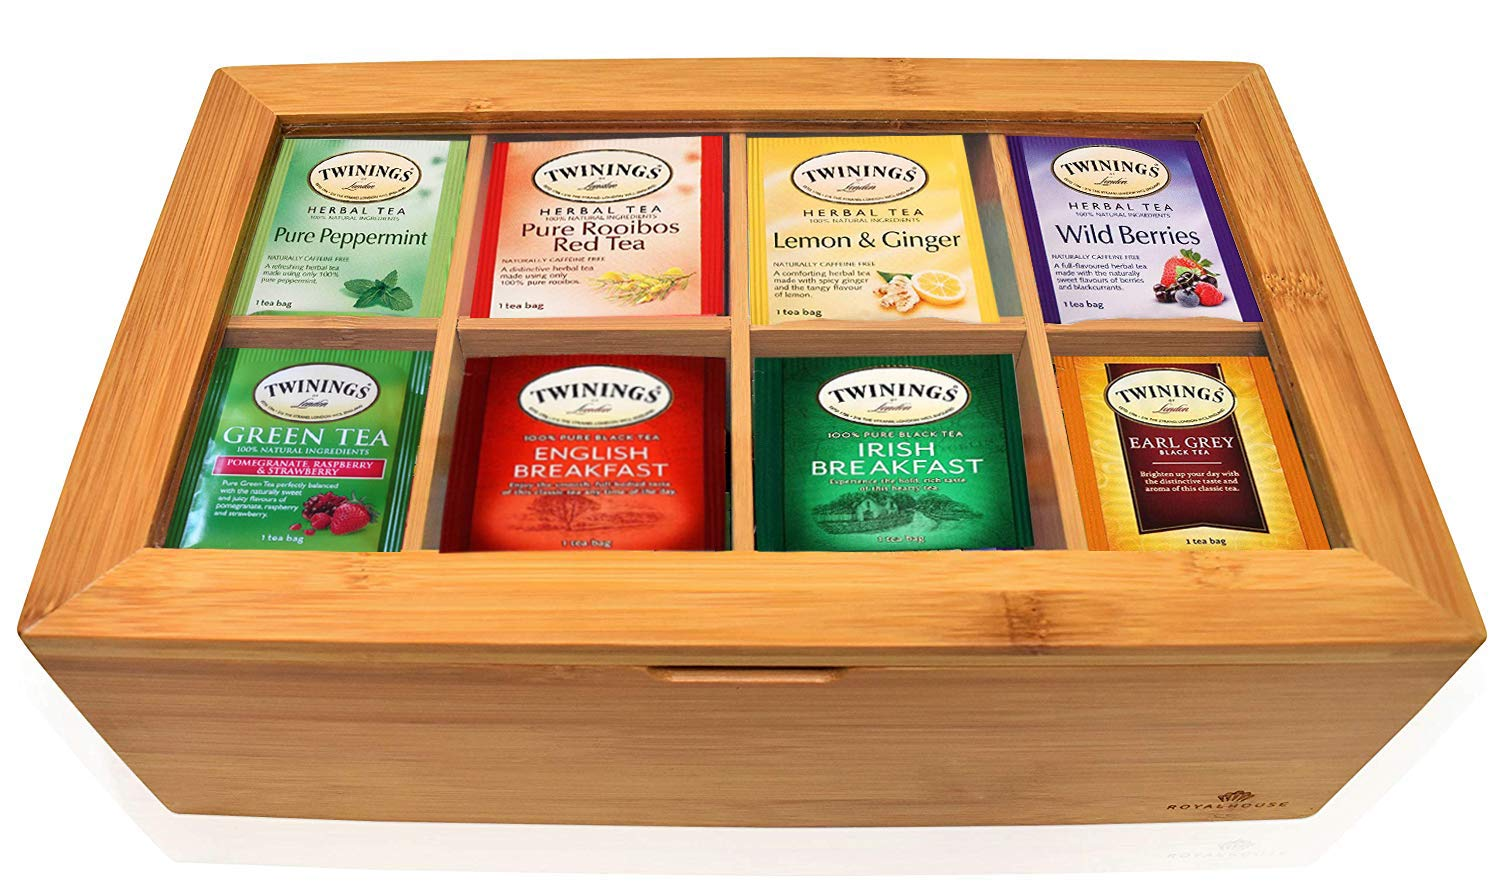 Twinings Tea Bags Sampler Assortment Box - 80 COUNT - Perfect Variety Pack in Bamboo Gift Box - Gift for Family, Friends, Coworkers - English Breakfast, English Afternoon, Green Tea, Early Grey, Chamo by EVA'S GIFT UNIVERSE